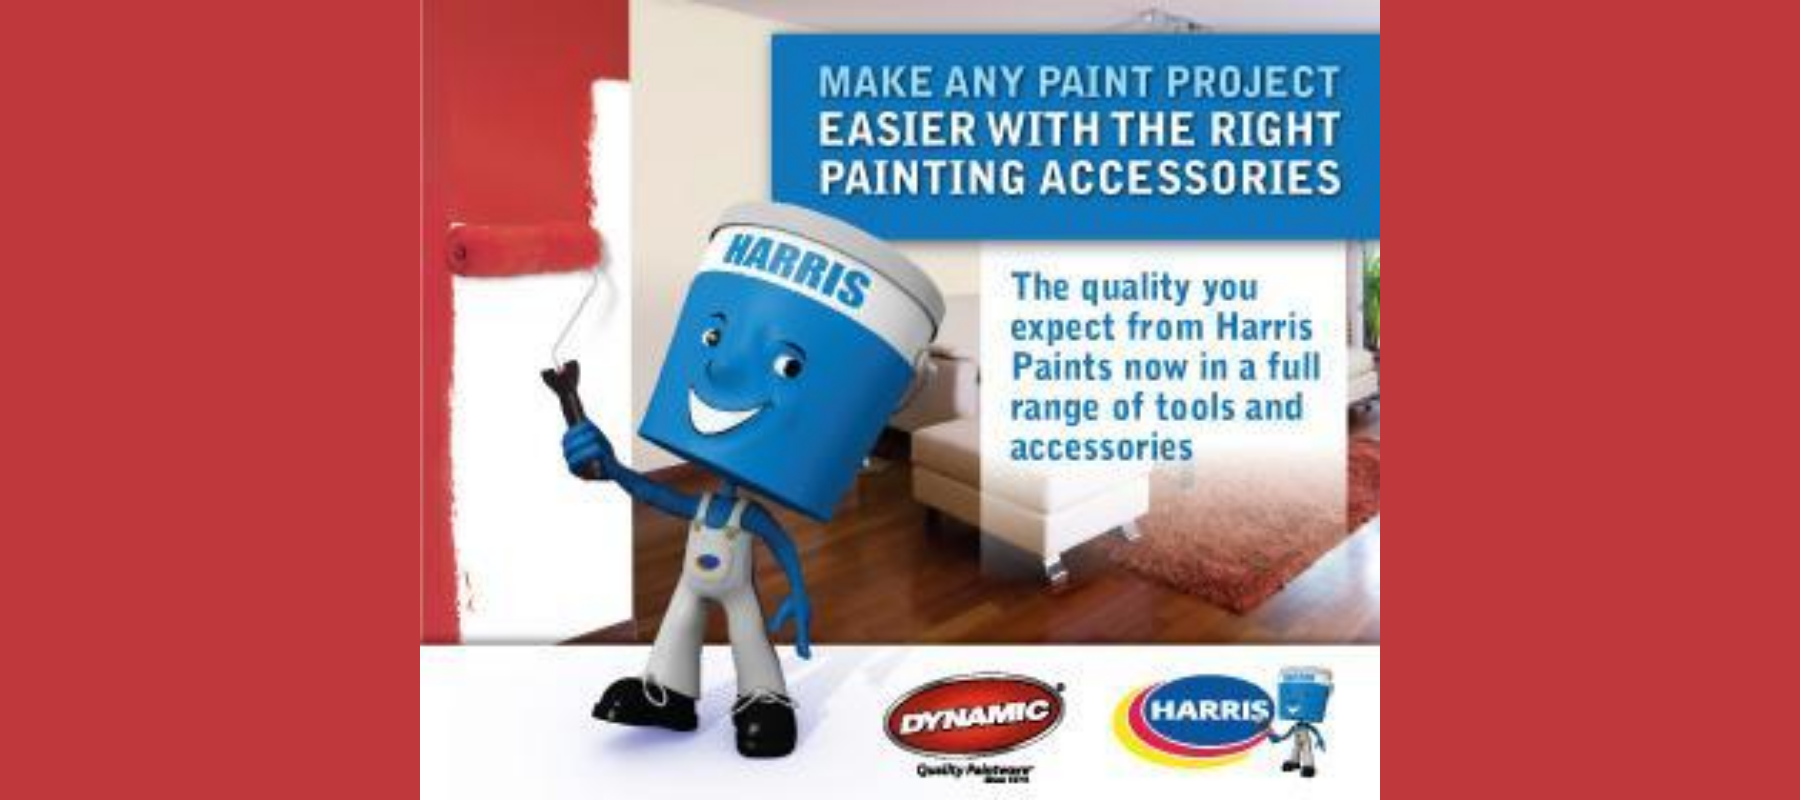 Harris Paints Partners with Dynamic Paint Products to Simplify Accessory Selection